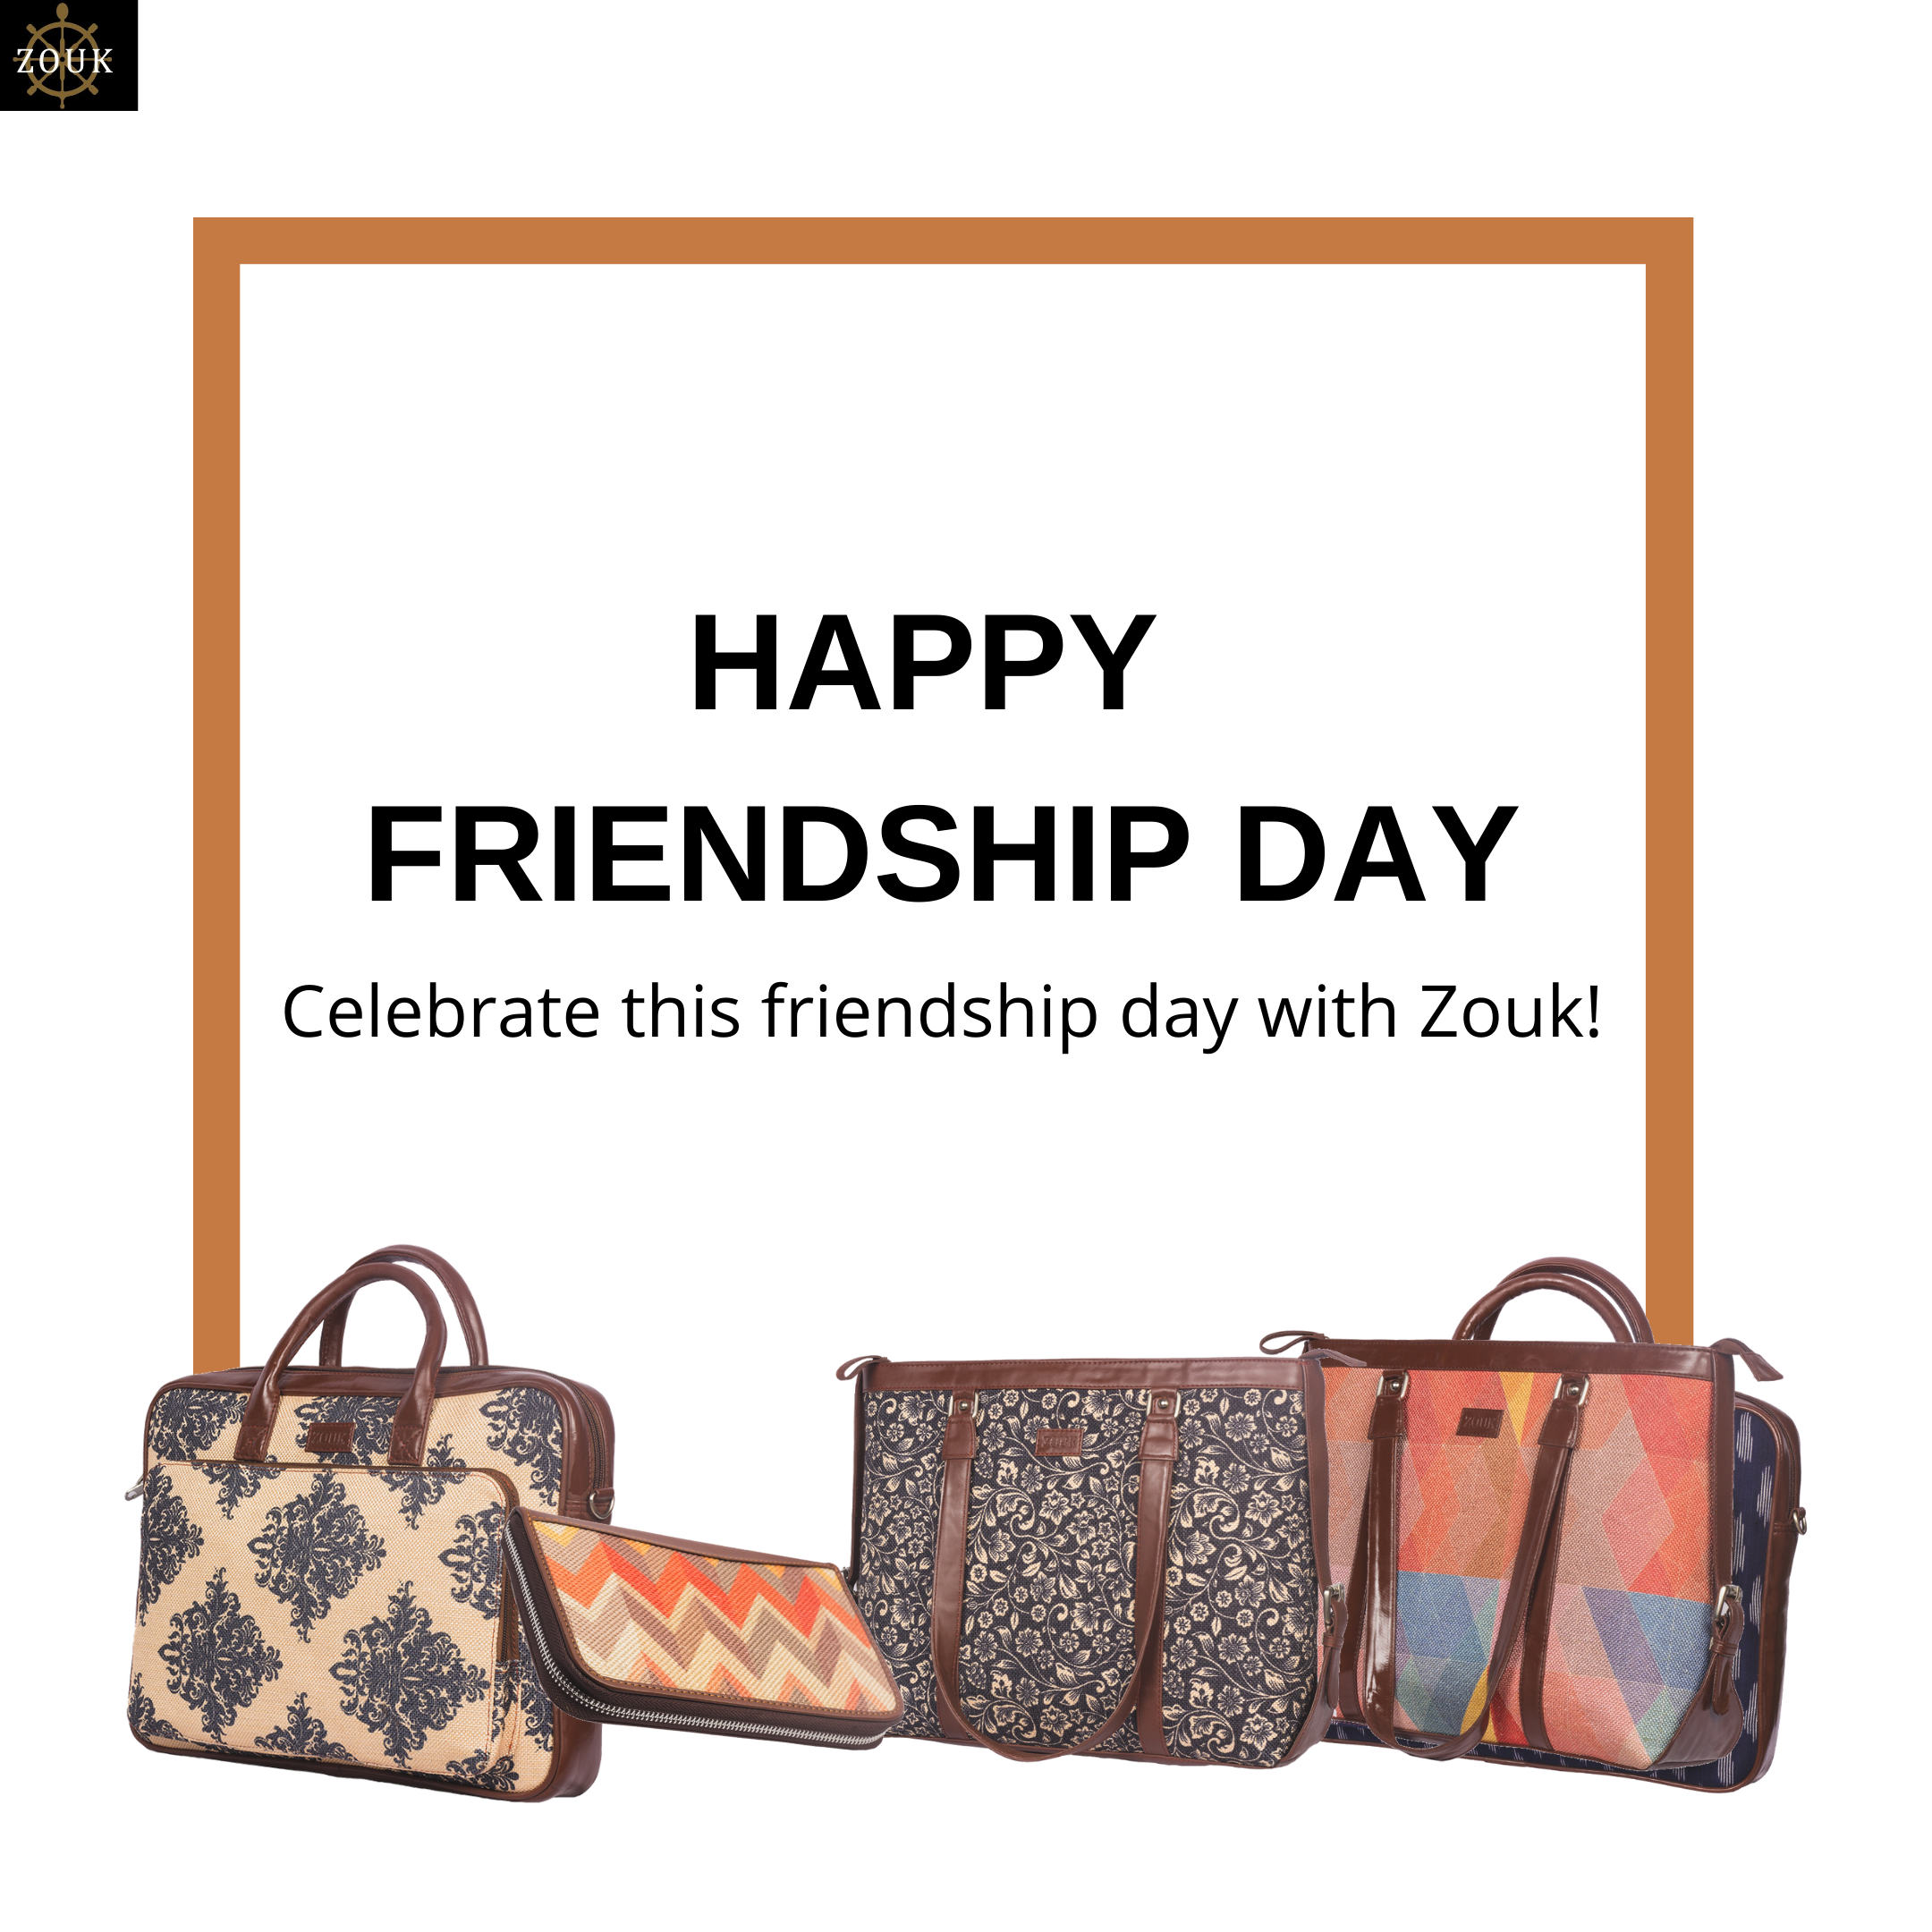 Happy Friendship Day! Send some handmade love to your bestie on this friendship day. Check out our handcrafted products collection on our website.   #friendshipday #friends #friendshipdaygifts #handmade #handcrafted #vegangifts #friendstime #zoukgifts #indianproducts #localbrand #madeinindia